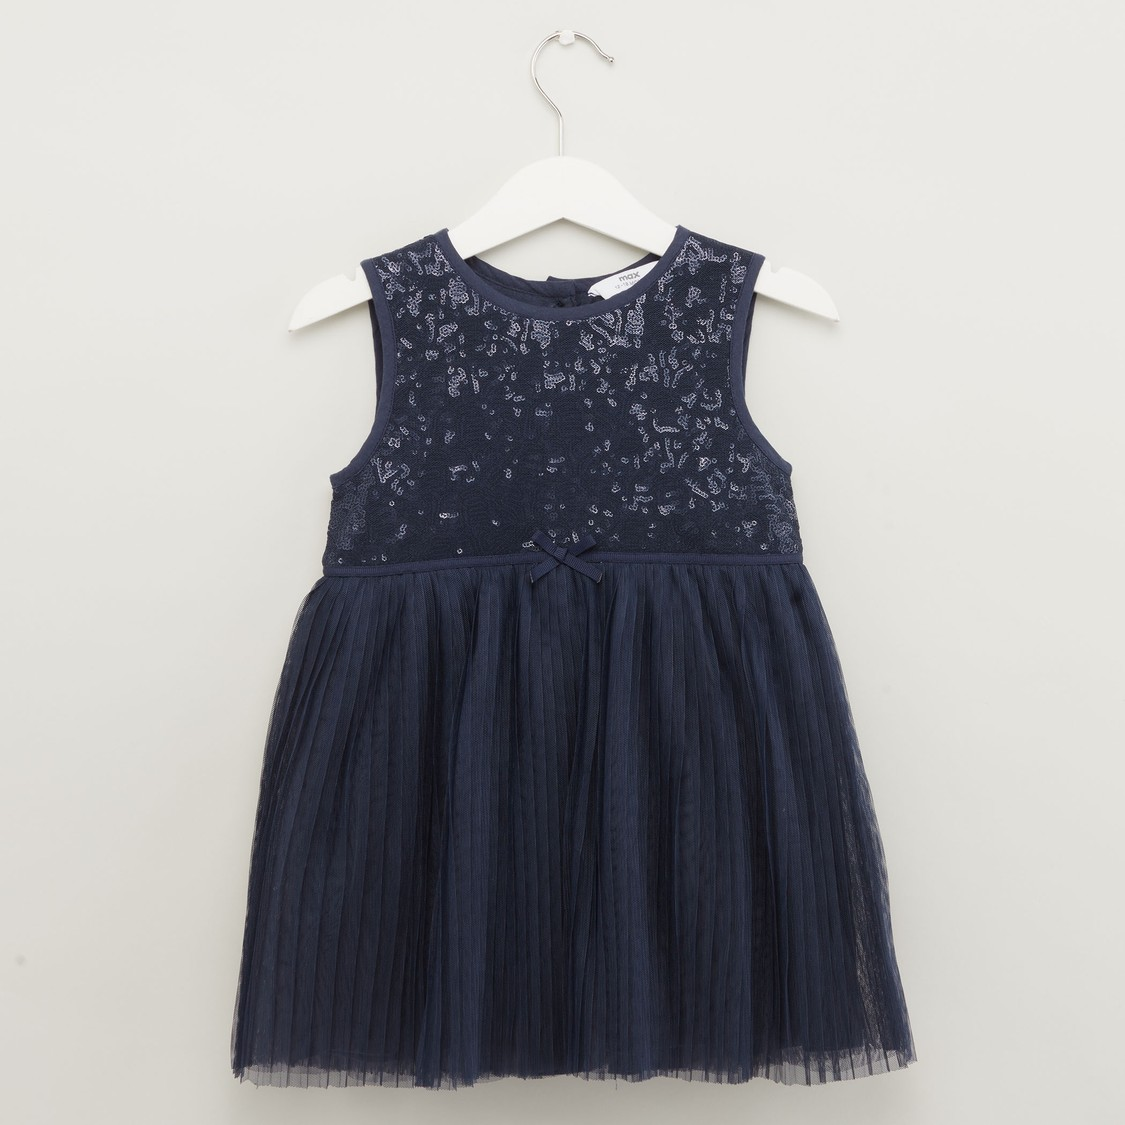 Sequin Detail Sleeveless Dress with Round Neck